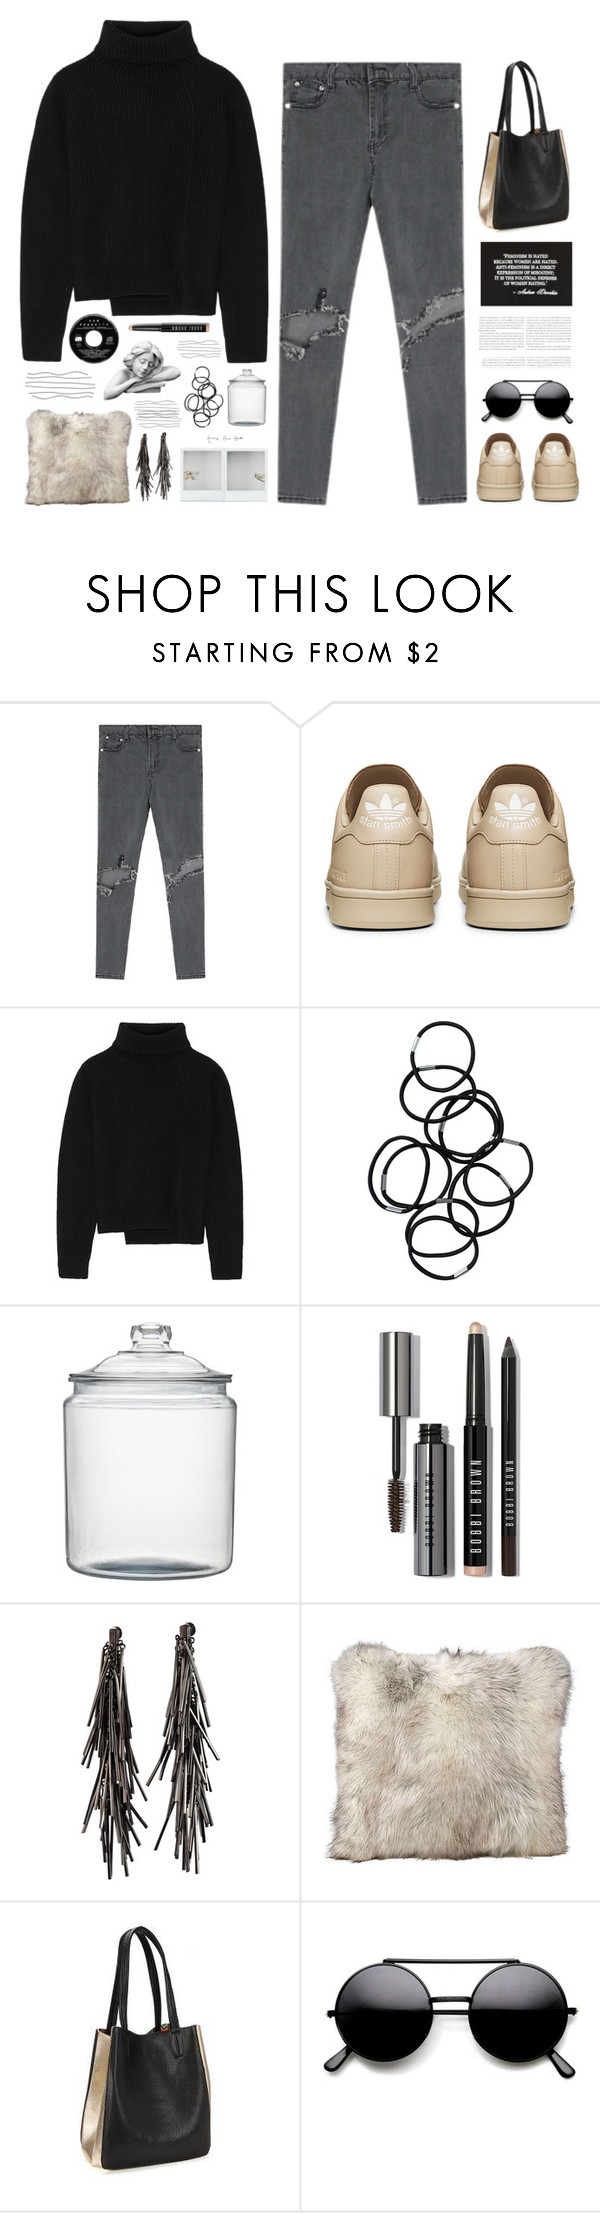 """Anti-Feminism = the political defense of women-hating"" by duciaxoxo ❤ liked on Polyvore featuring Proenza Schouler, Monki, Crate and Barrel, Bobbi Brown Cosmetics and Eddie Borgo"